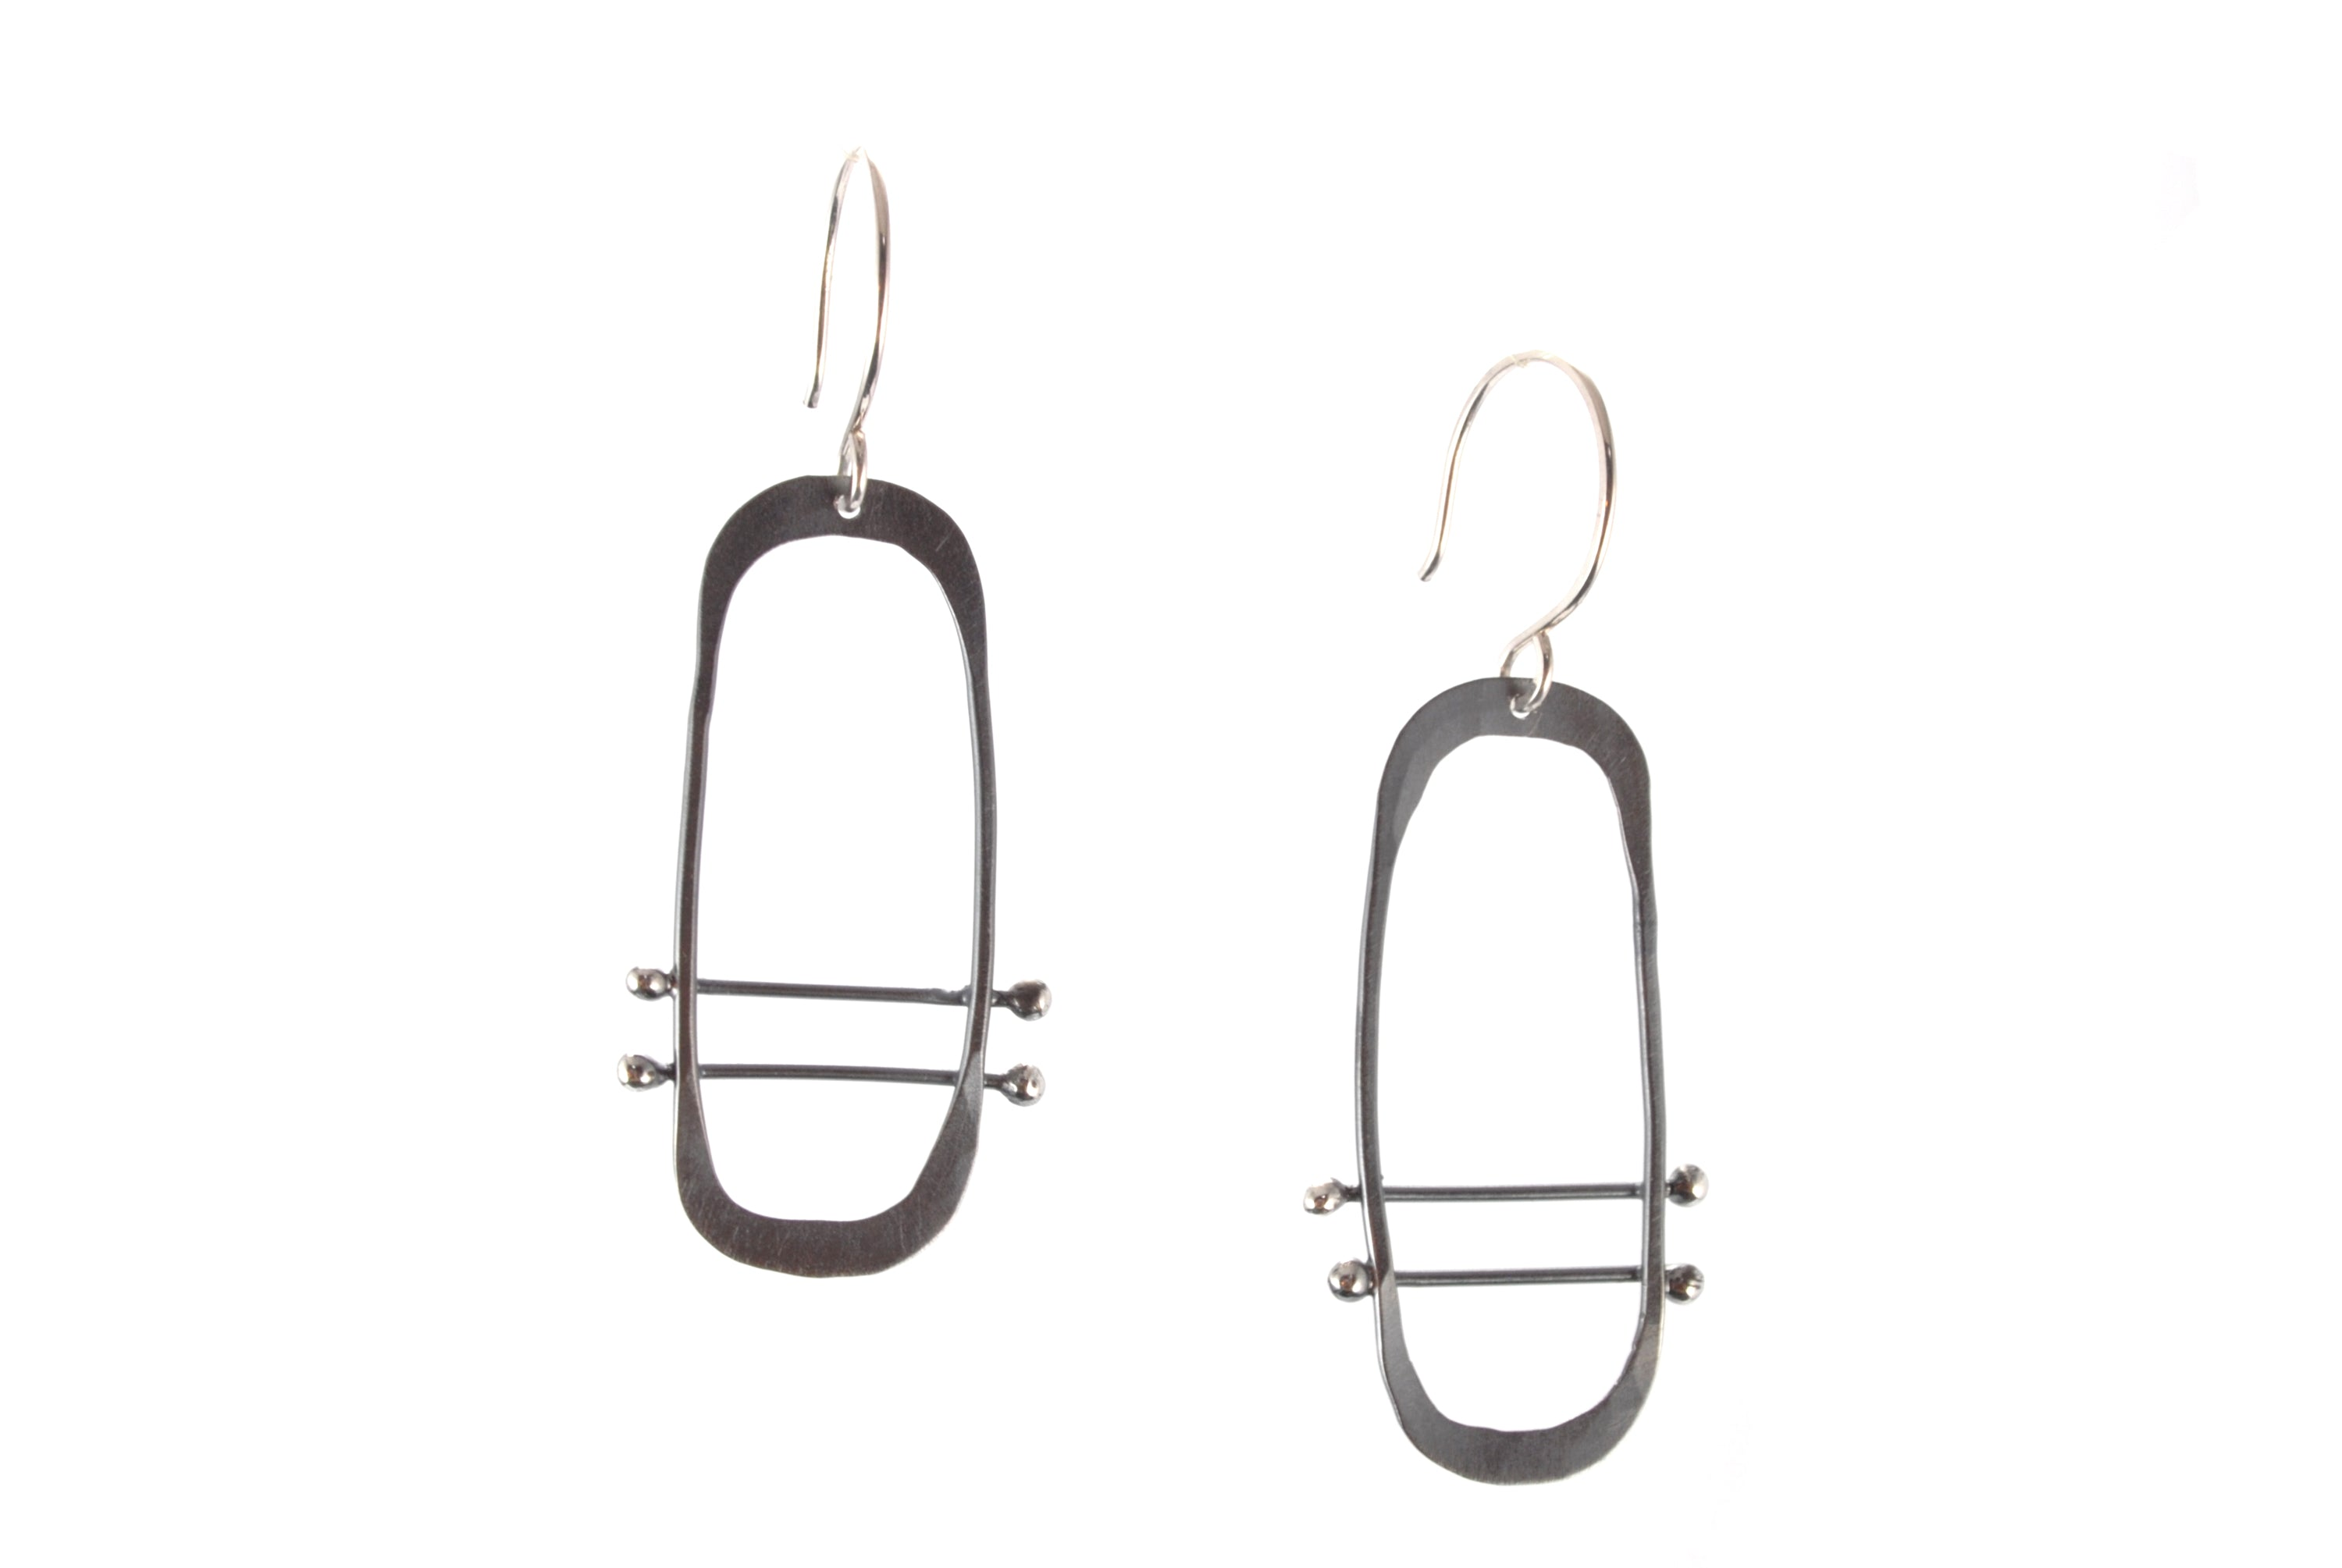 Oxidized Silver Oval Earrings | Olivia de Soria